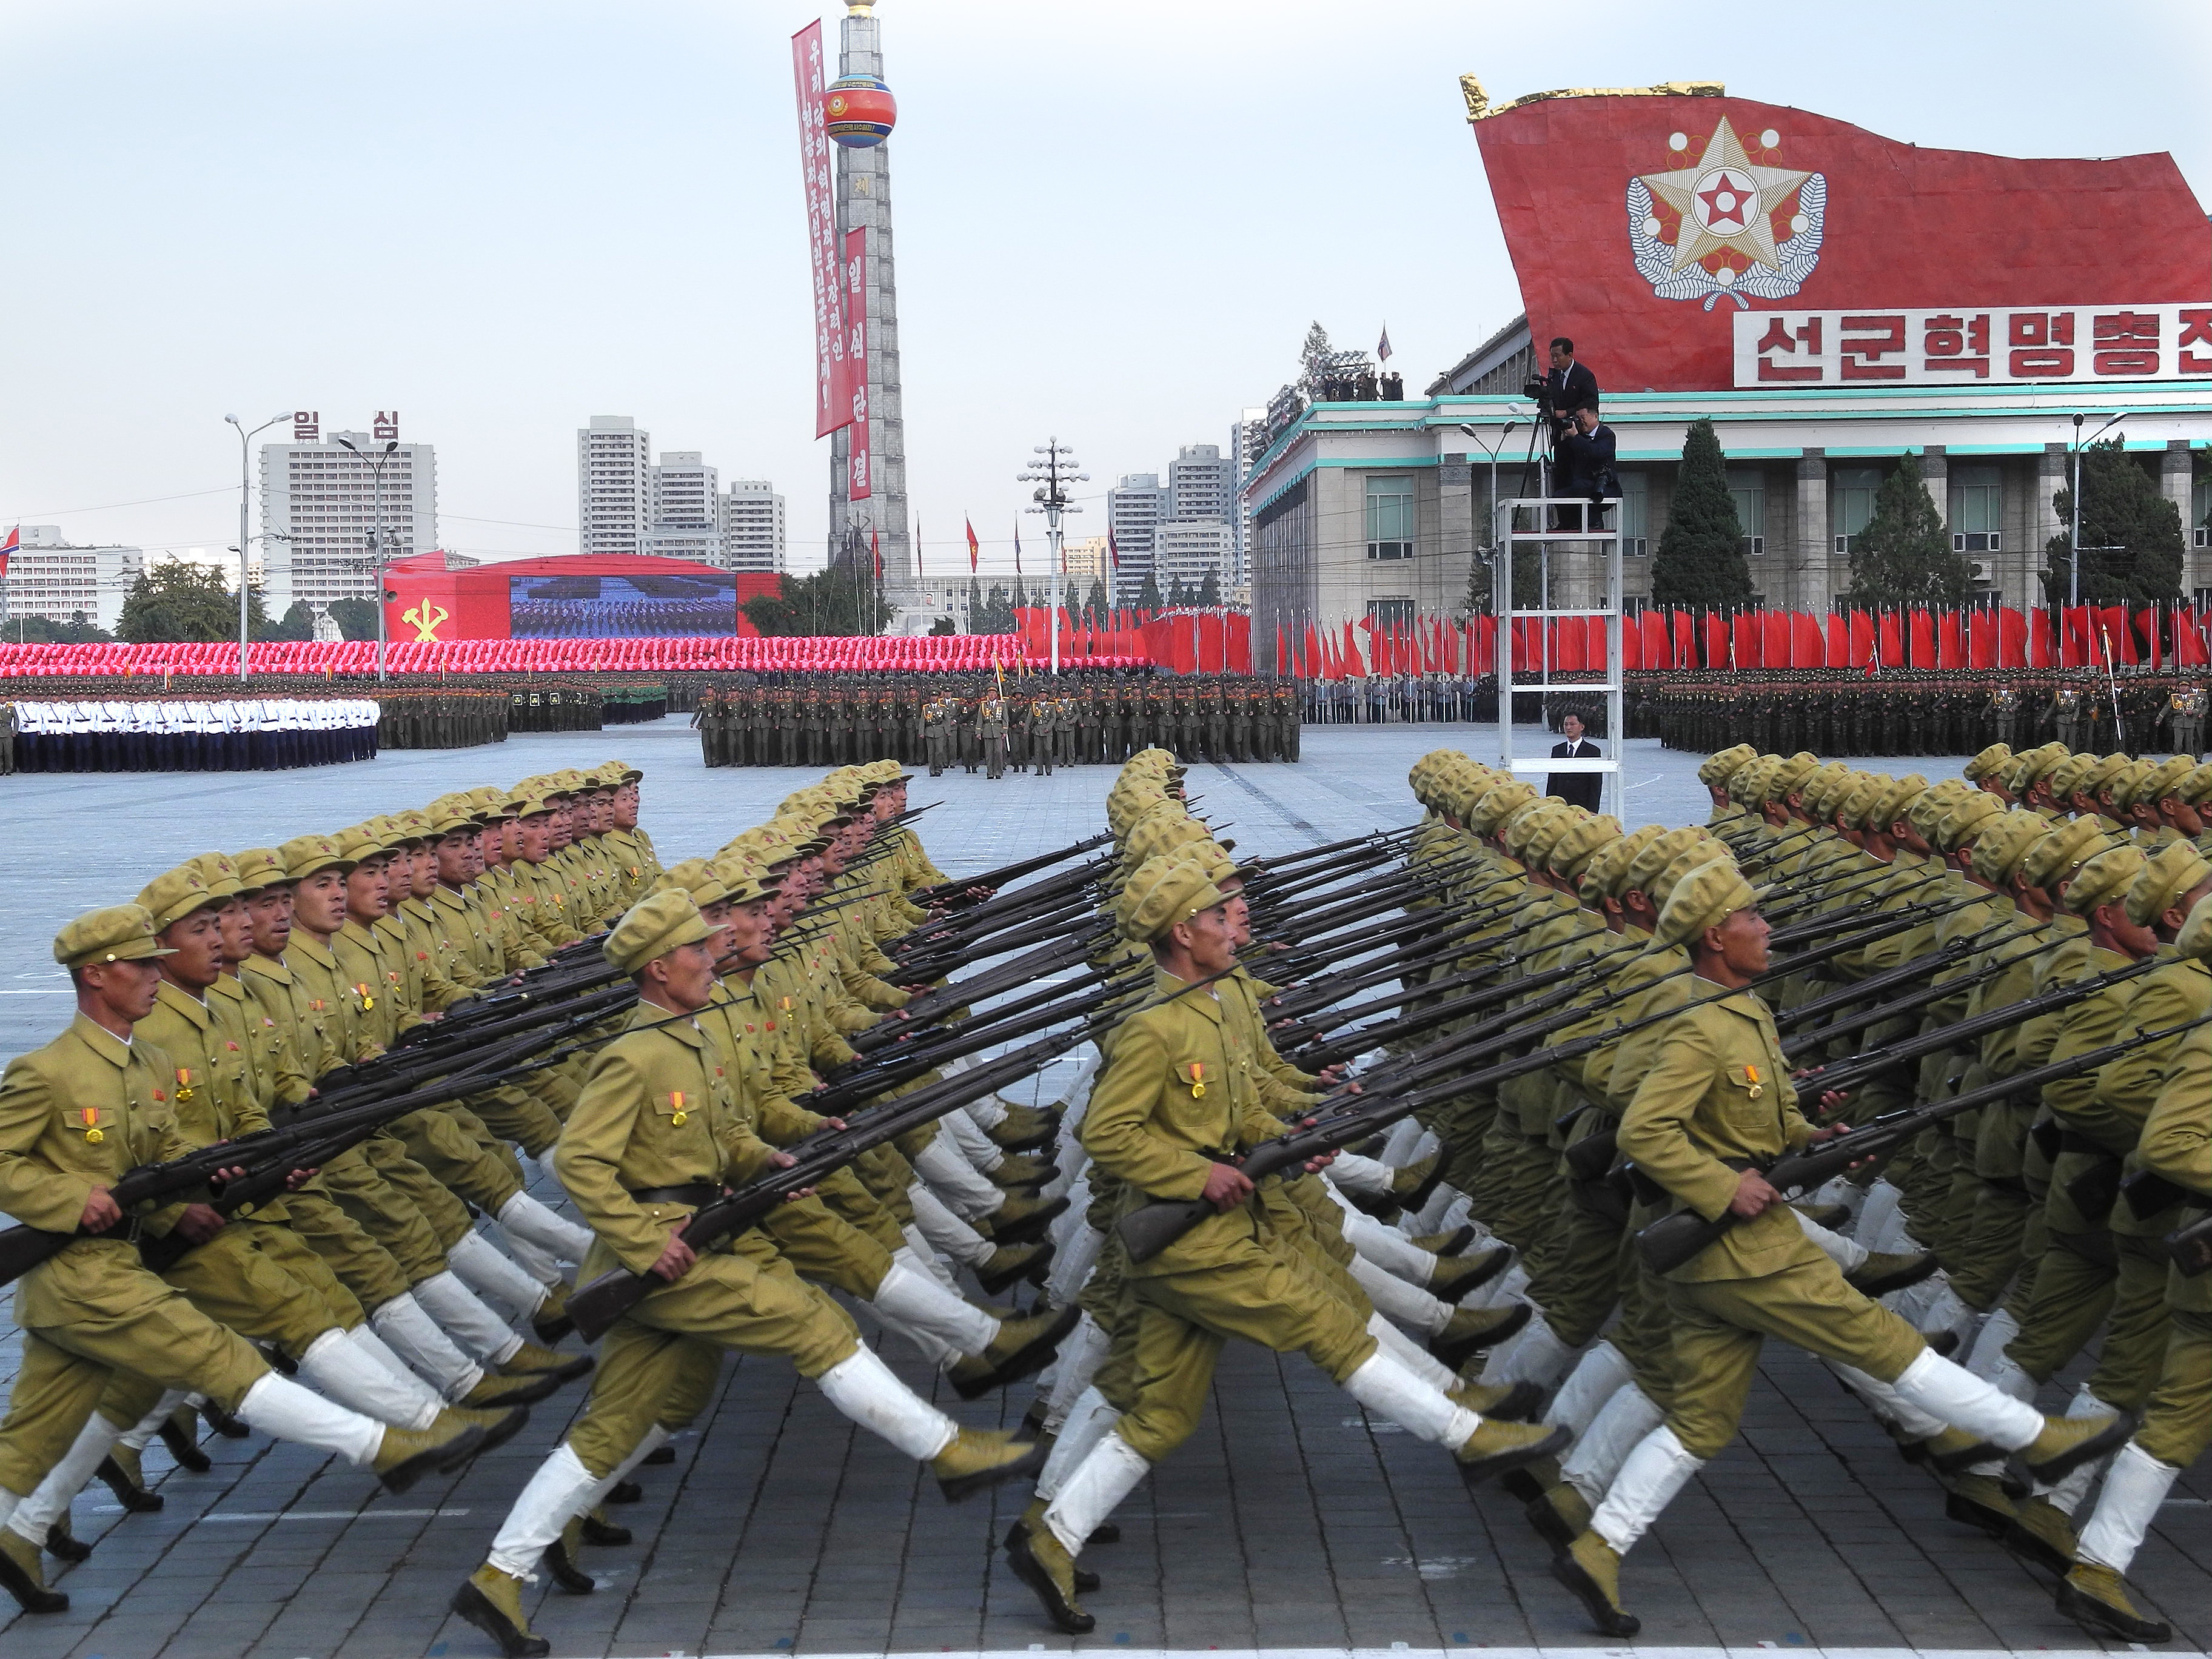 Soldiers march with bayonets during the military parade for the 70th anniversary of the founding of the ruling workers' party on Kim Il-Sung Square in Pyongyang, North Korea, on 10 Oct. 2015.